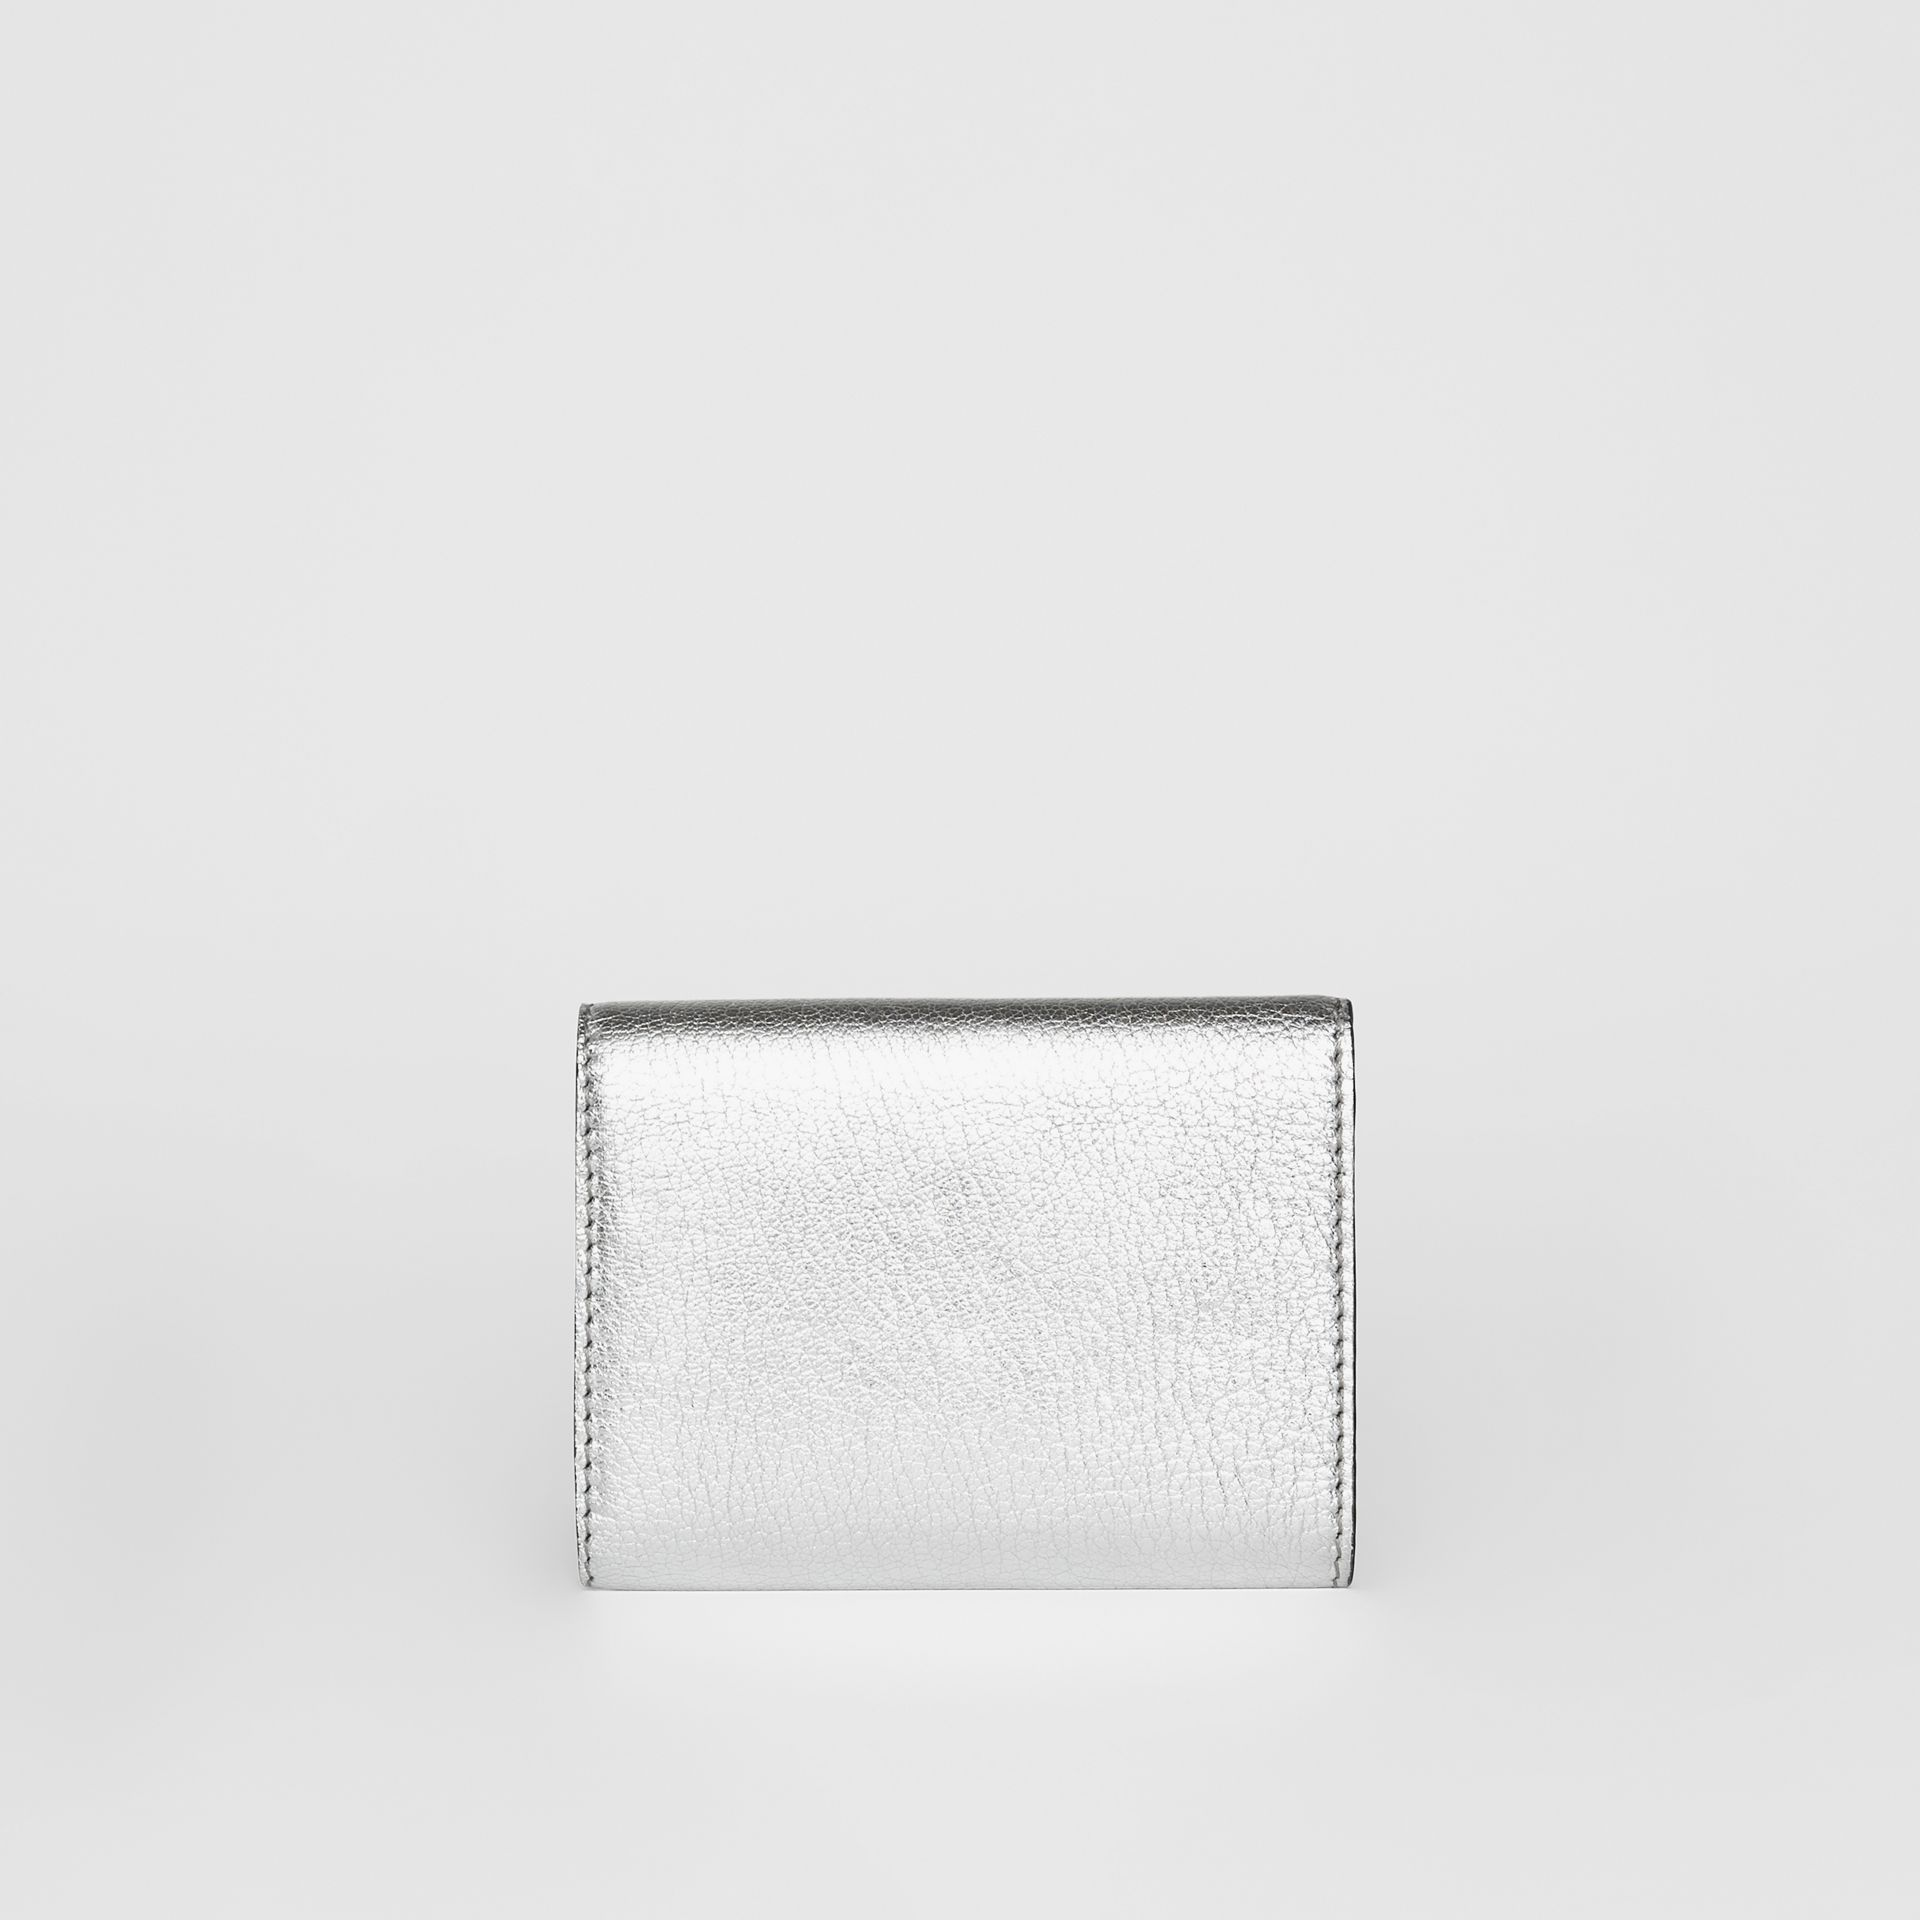 Small D-ring Metallic Leather Wallet in Silver - Women | Burberry - gallery image 4